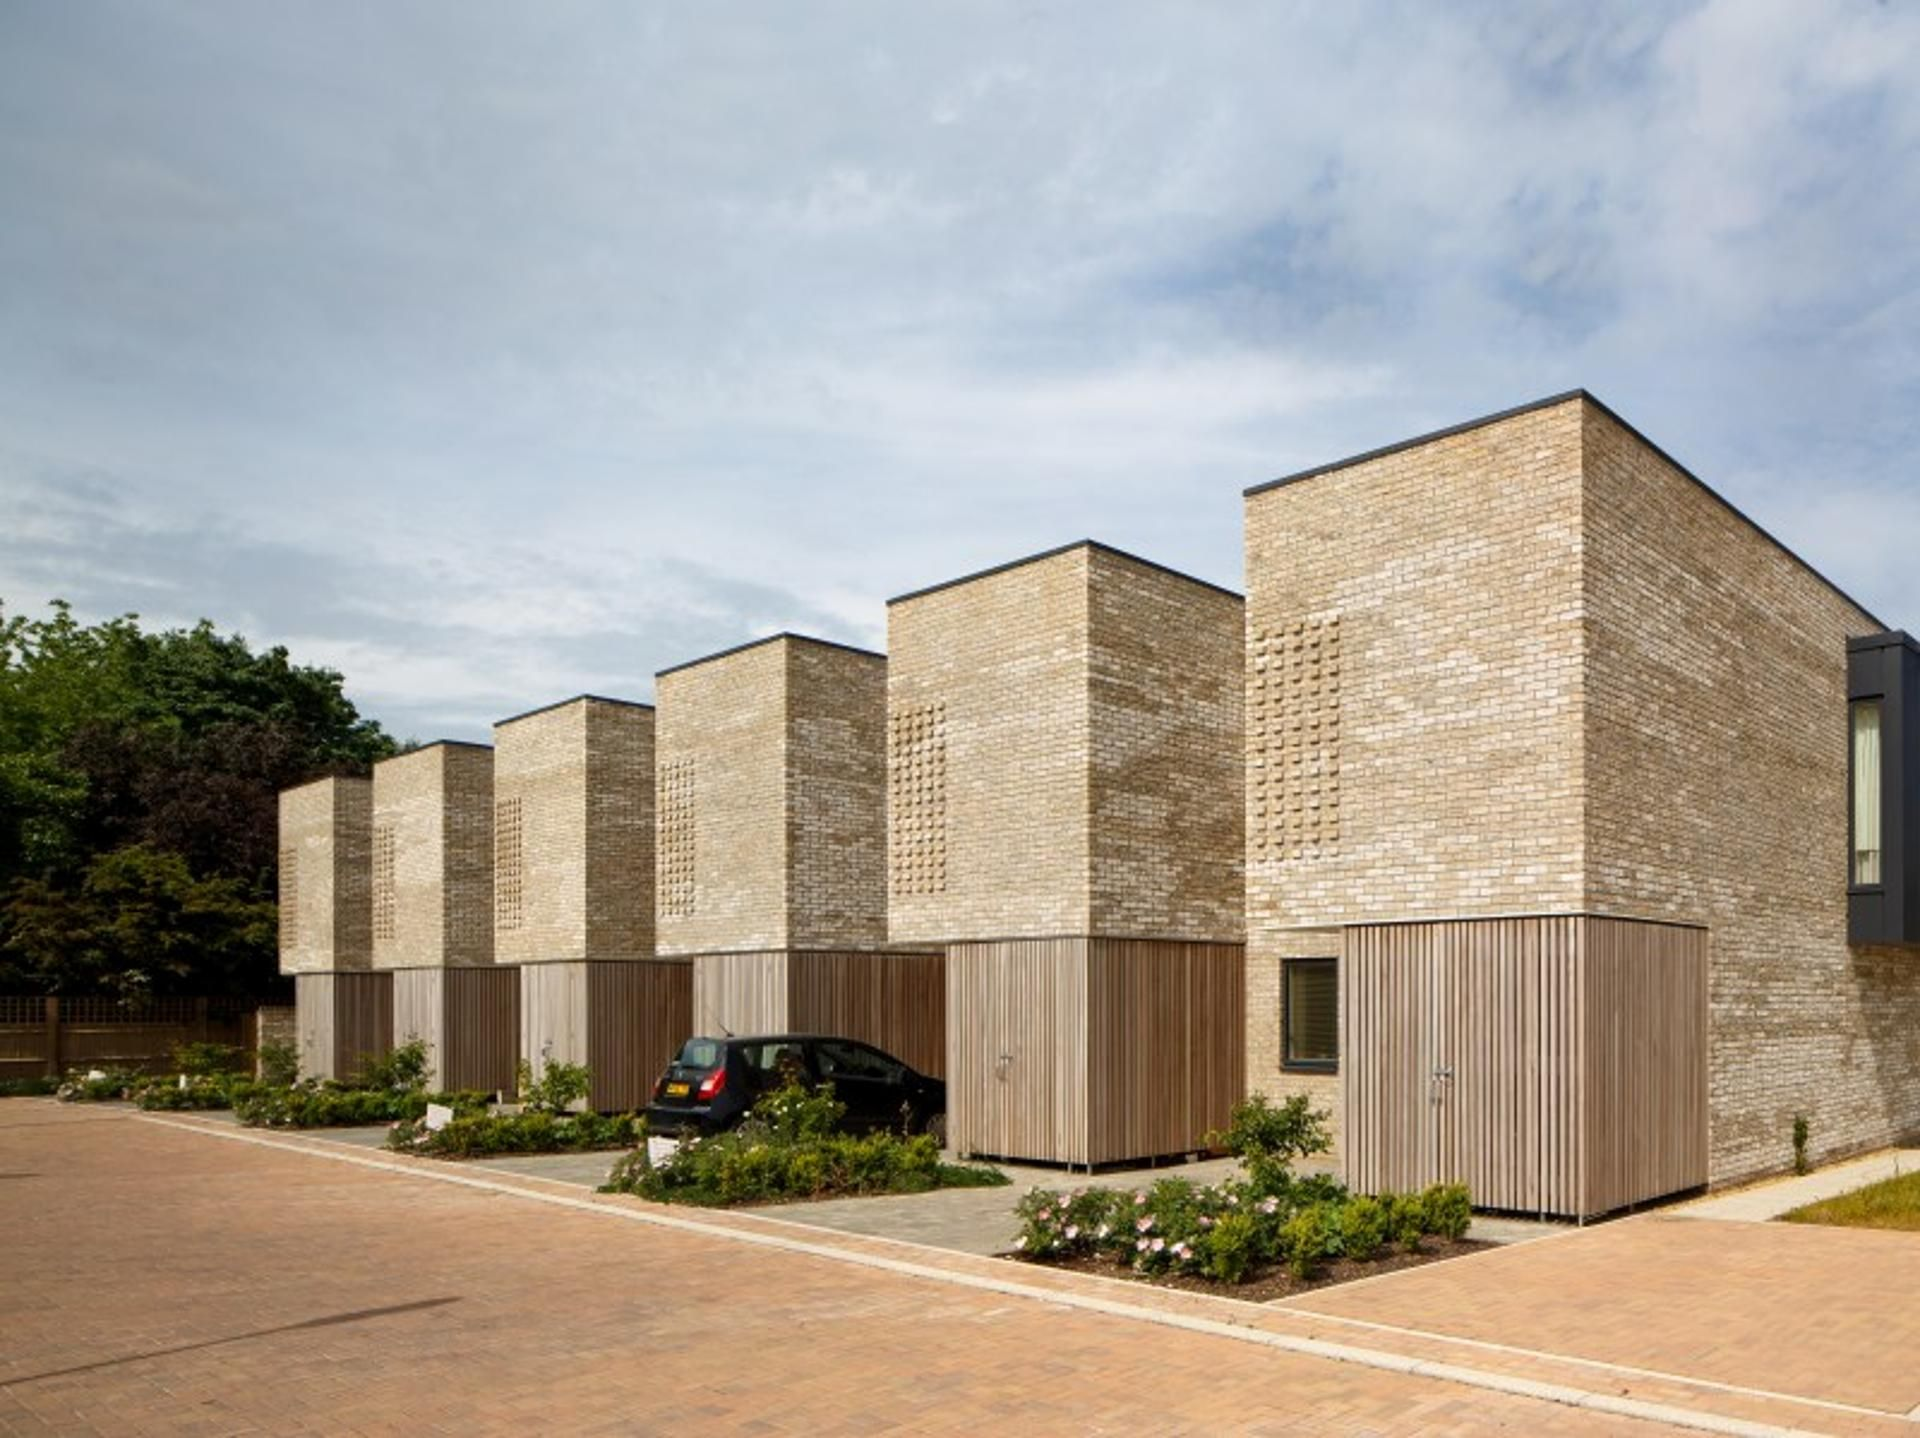 Adam architecture groundbreaking country house in hampshire - Seven Acres Cambridge Formation Architects Louis Sinclair